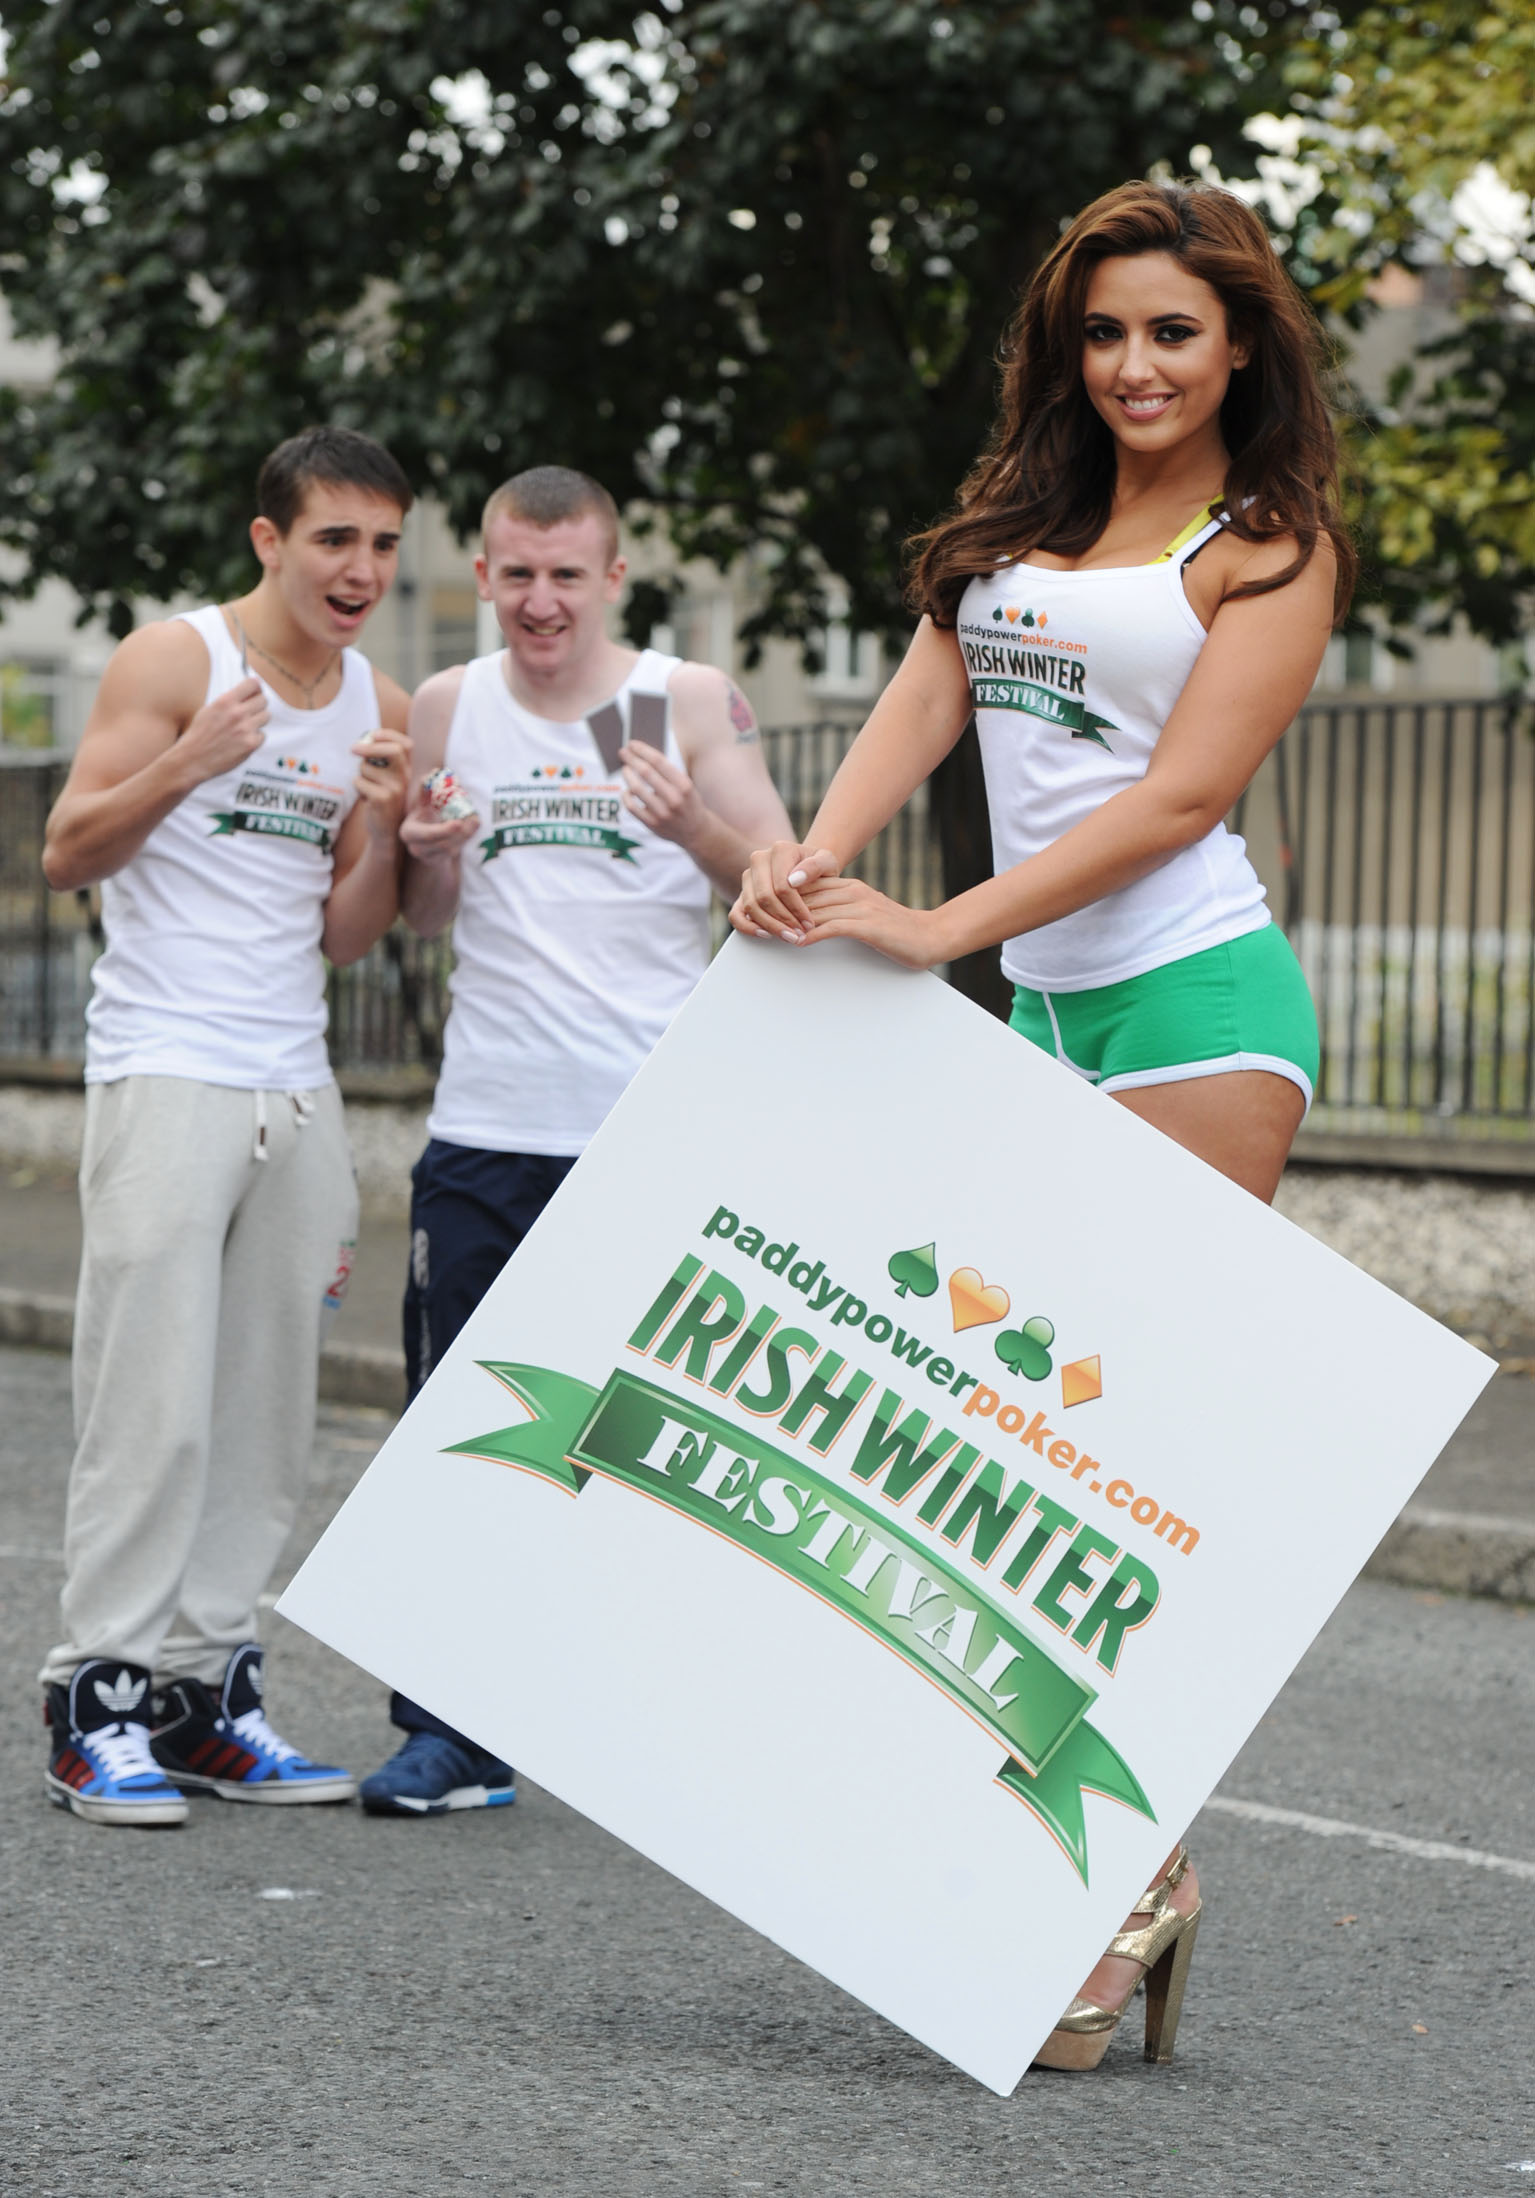 Irish Winter Poker Festival